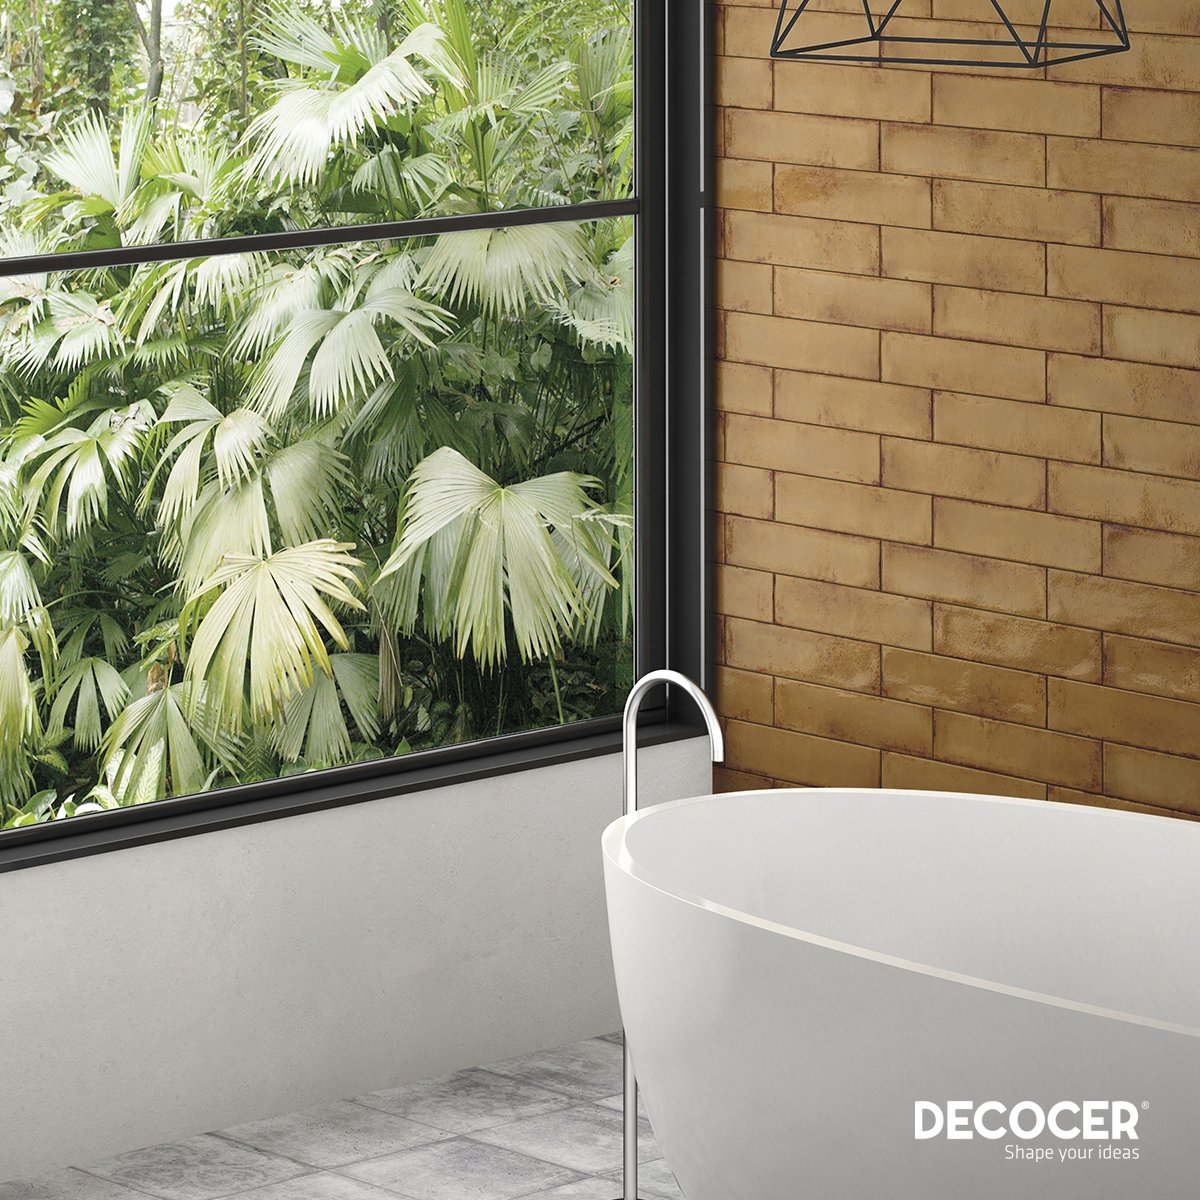 Finished with #reactiveglaze, the tiles of the #Granada collection acquire an intense and exotic appearance typical of the hottest regions of the planet. Each piece contains unique nuances that give it a special touch, achieving an amazing look throughout. #Decocer pic.twitter.com/7fMJbT5ZyA